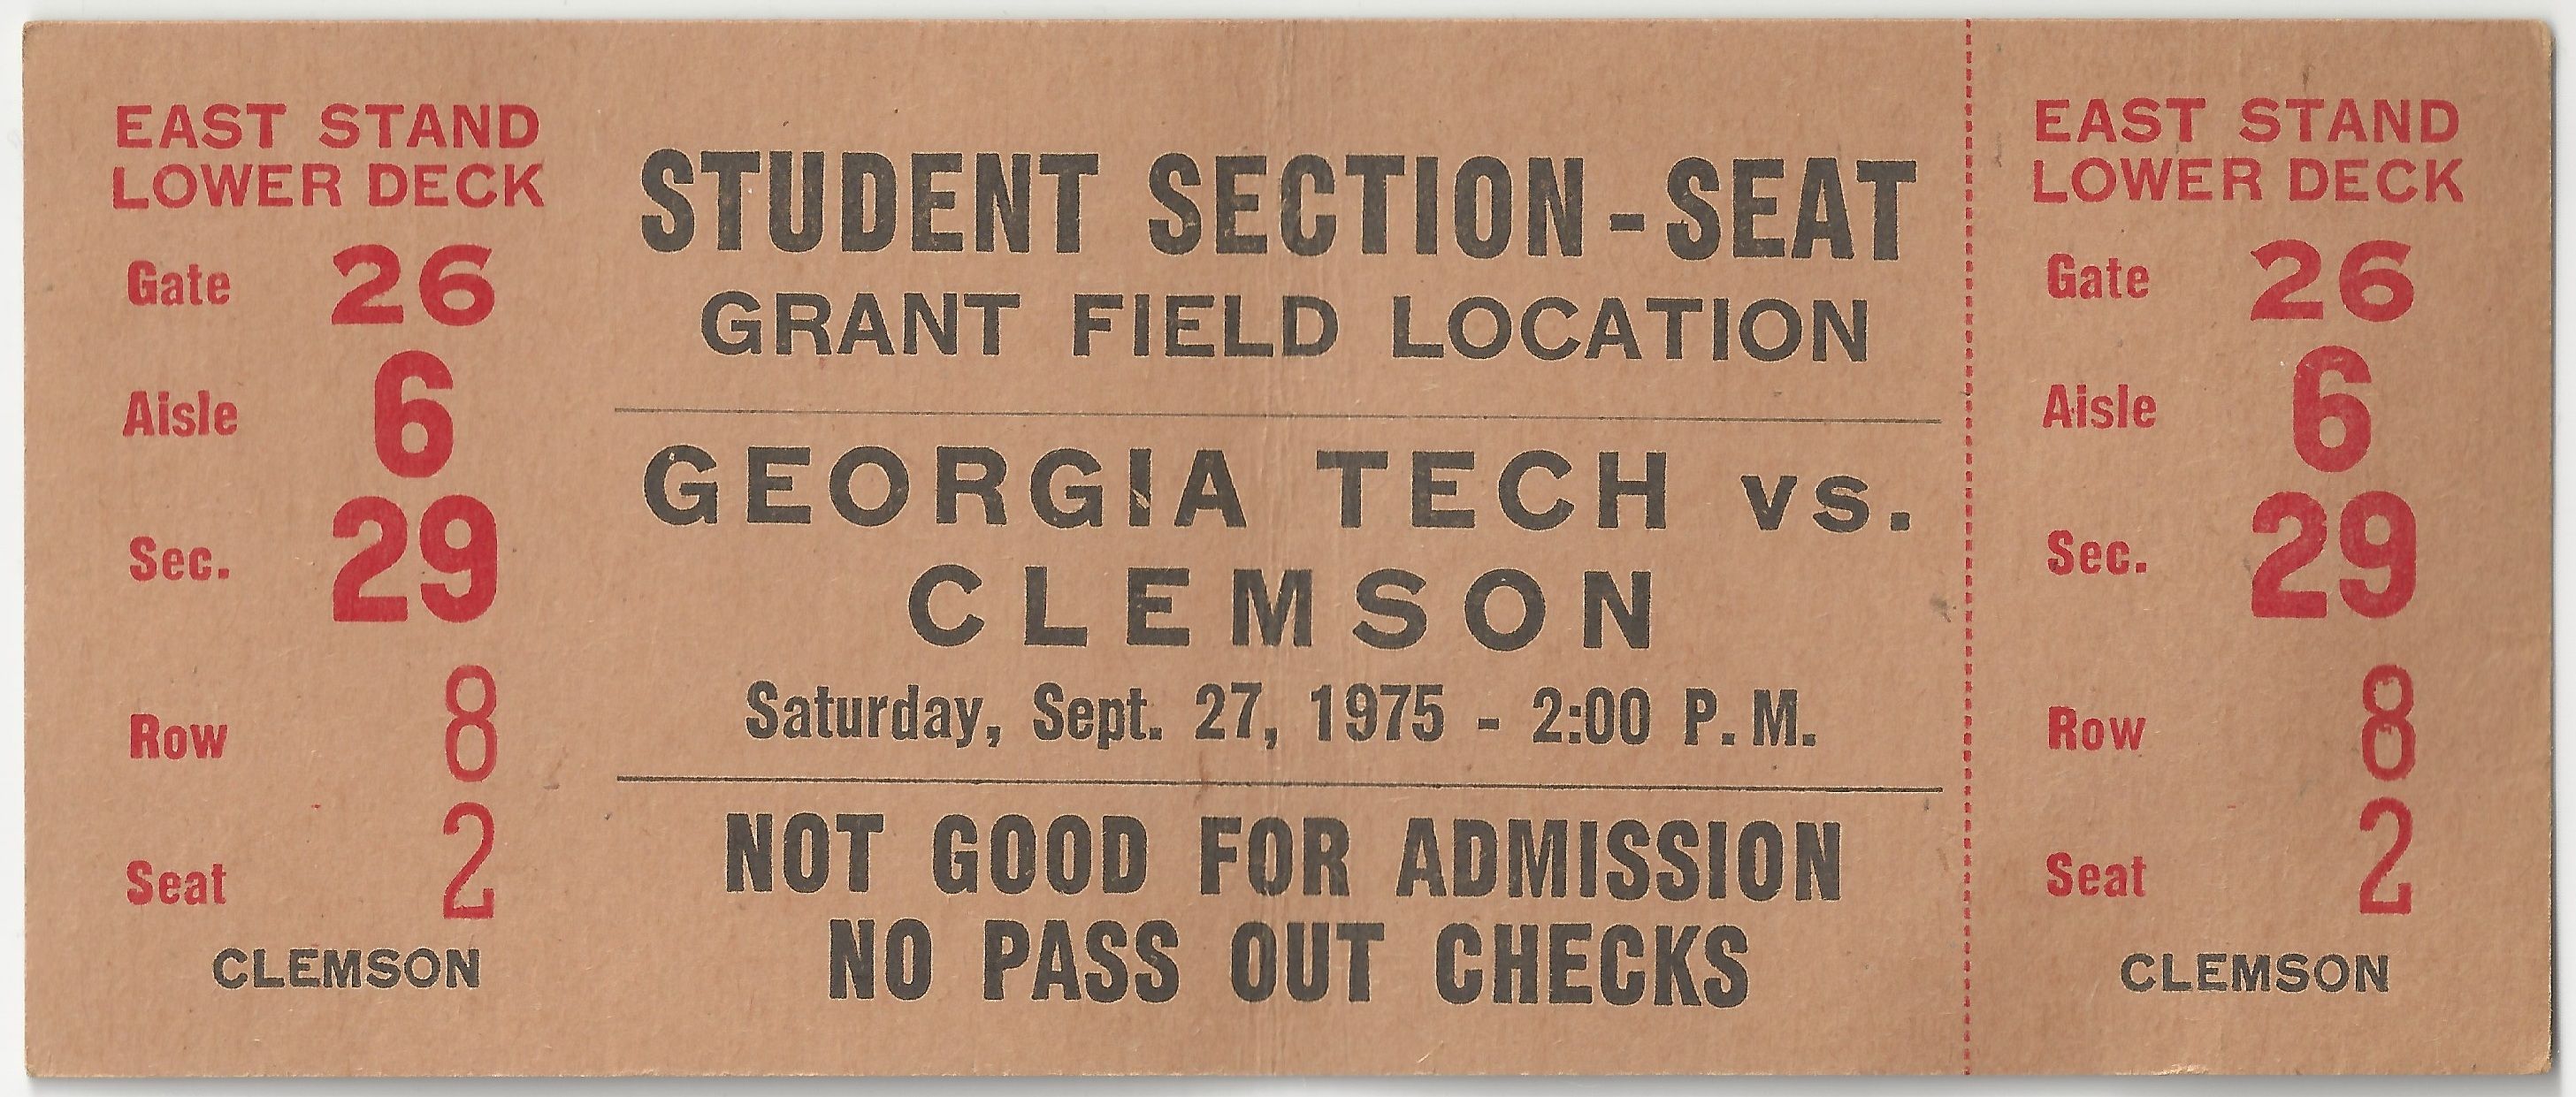 1975-09-27 - Georgia Tech vs. Clemson - Student